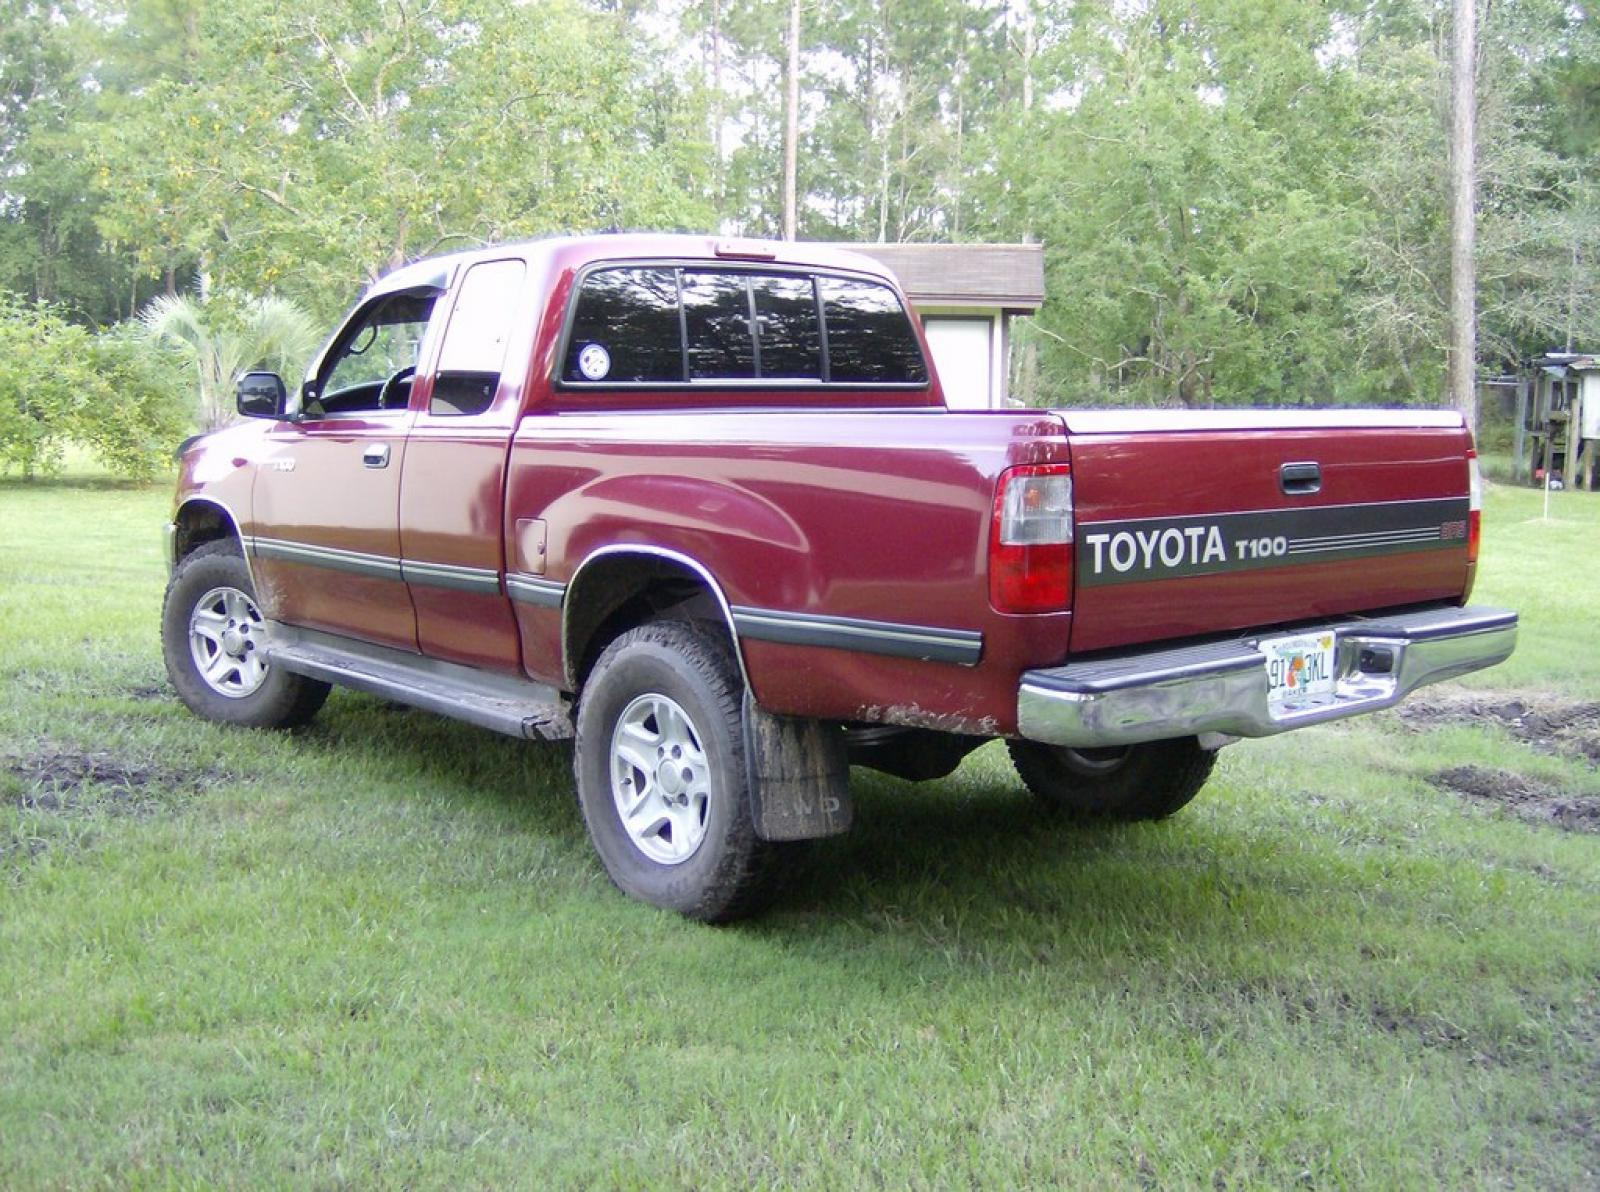 1997 toyota t100 information and photos zombiedrive. Black Bedroom Furniture Sets. Home Design Ideas